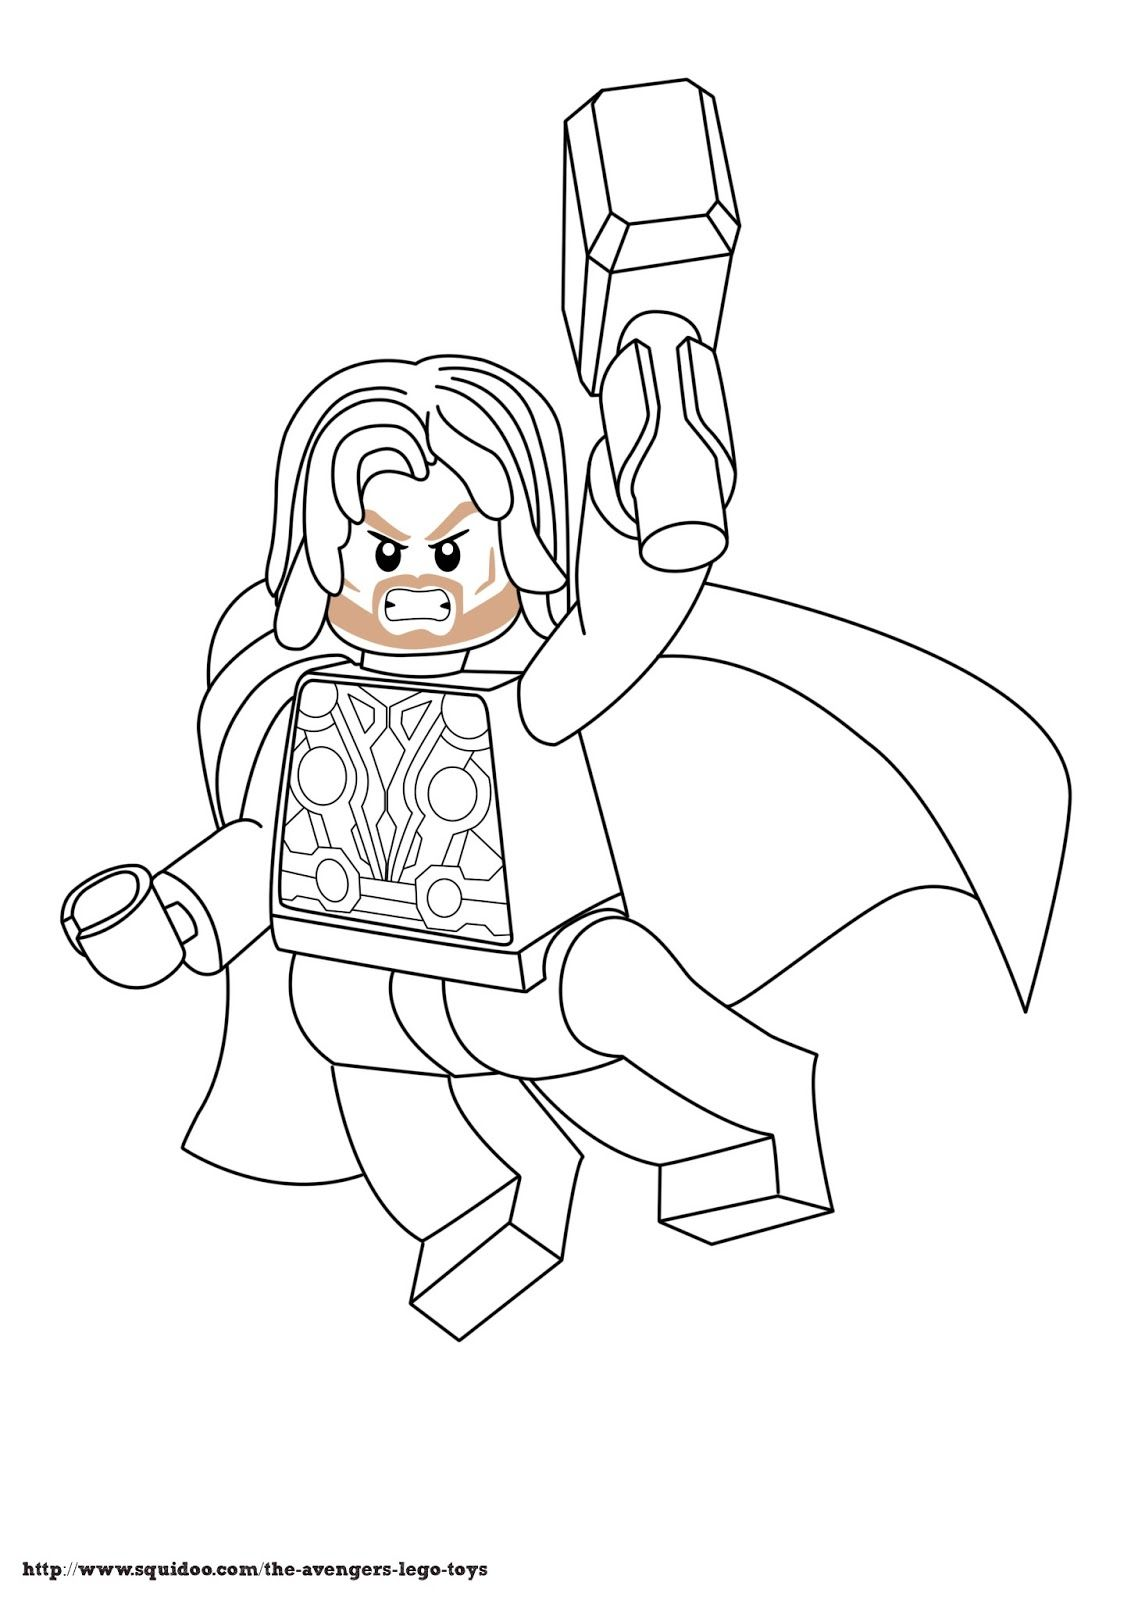 Pin By Nadine Bonsant On Coloring Characters Lego Coloring Pages